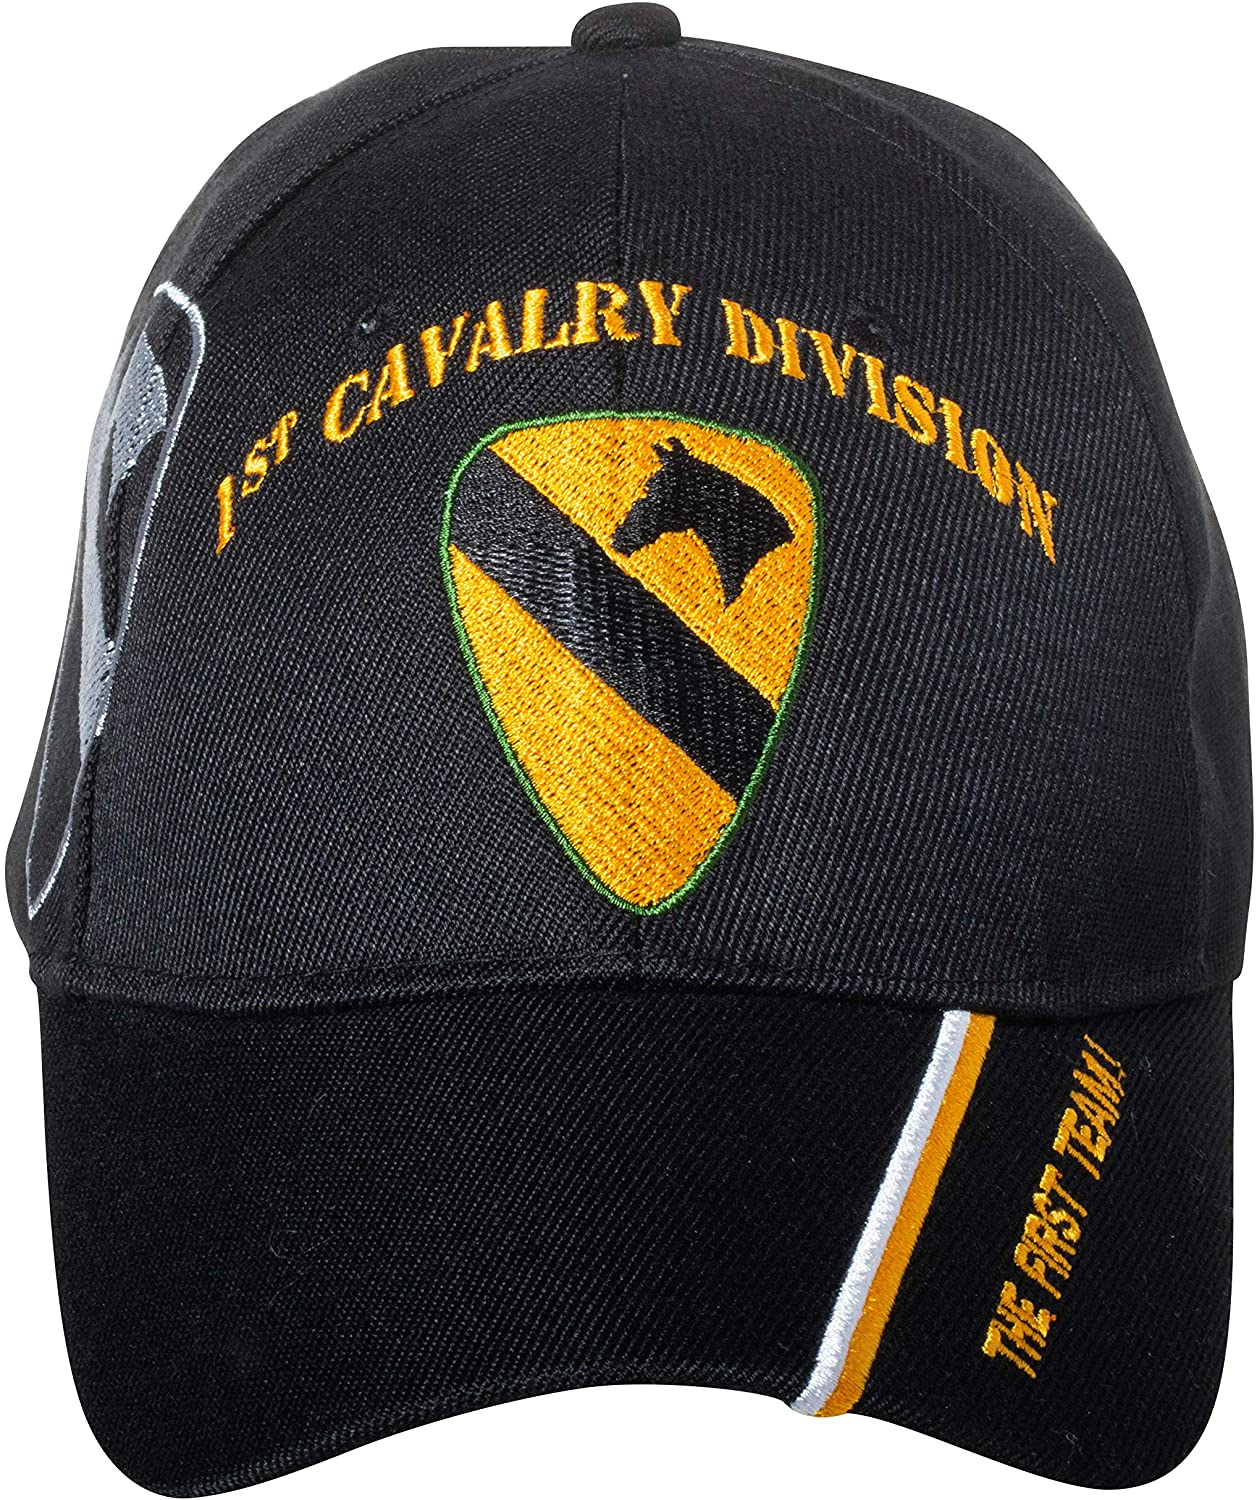 """1ST CAVALRY DIVISION /""""THE FIRST TEAM/"""" EMBROIDERED SHIRT"""